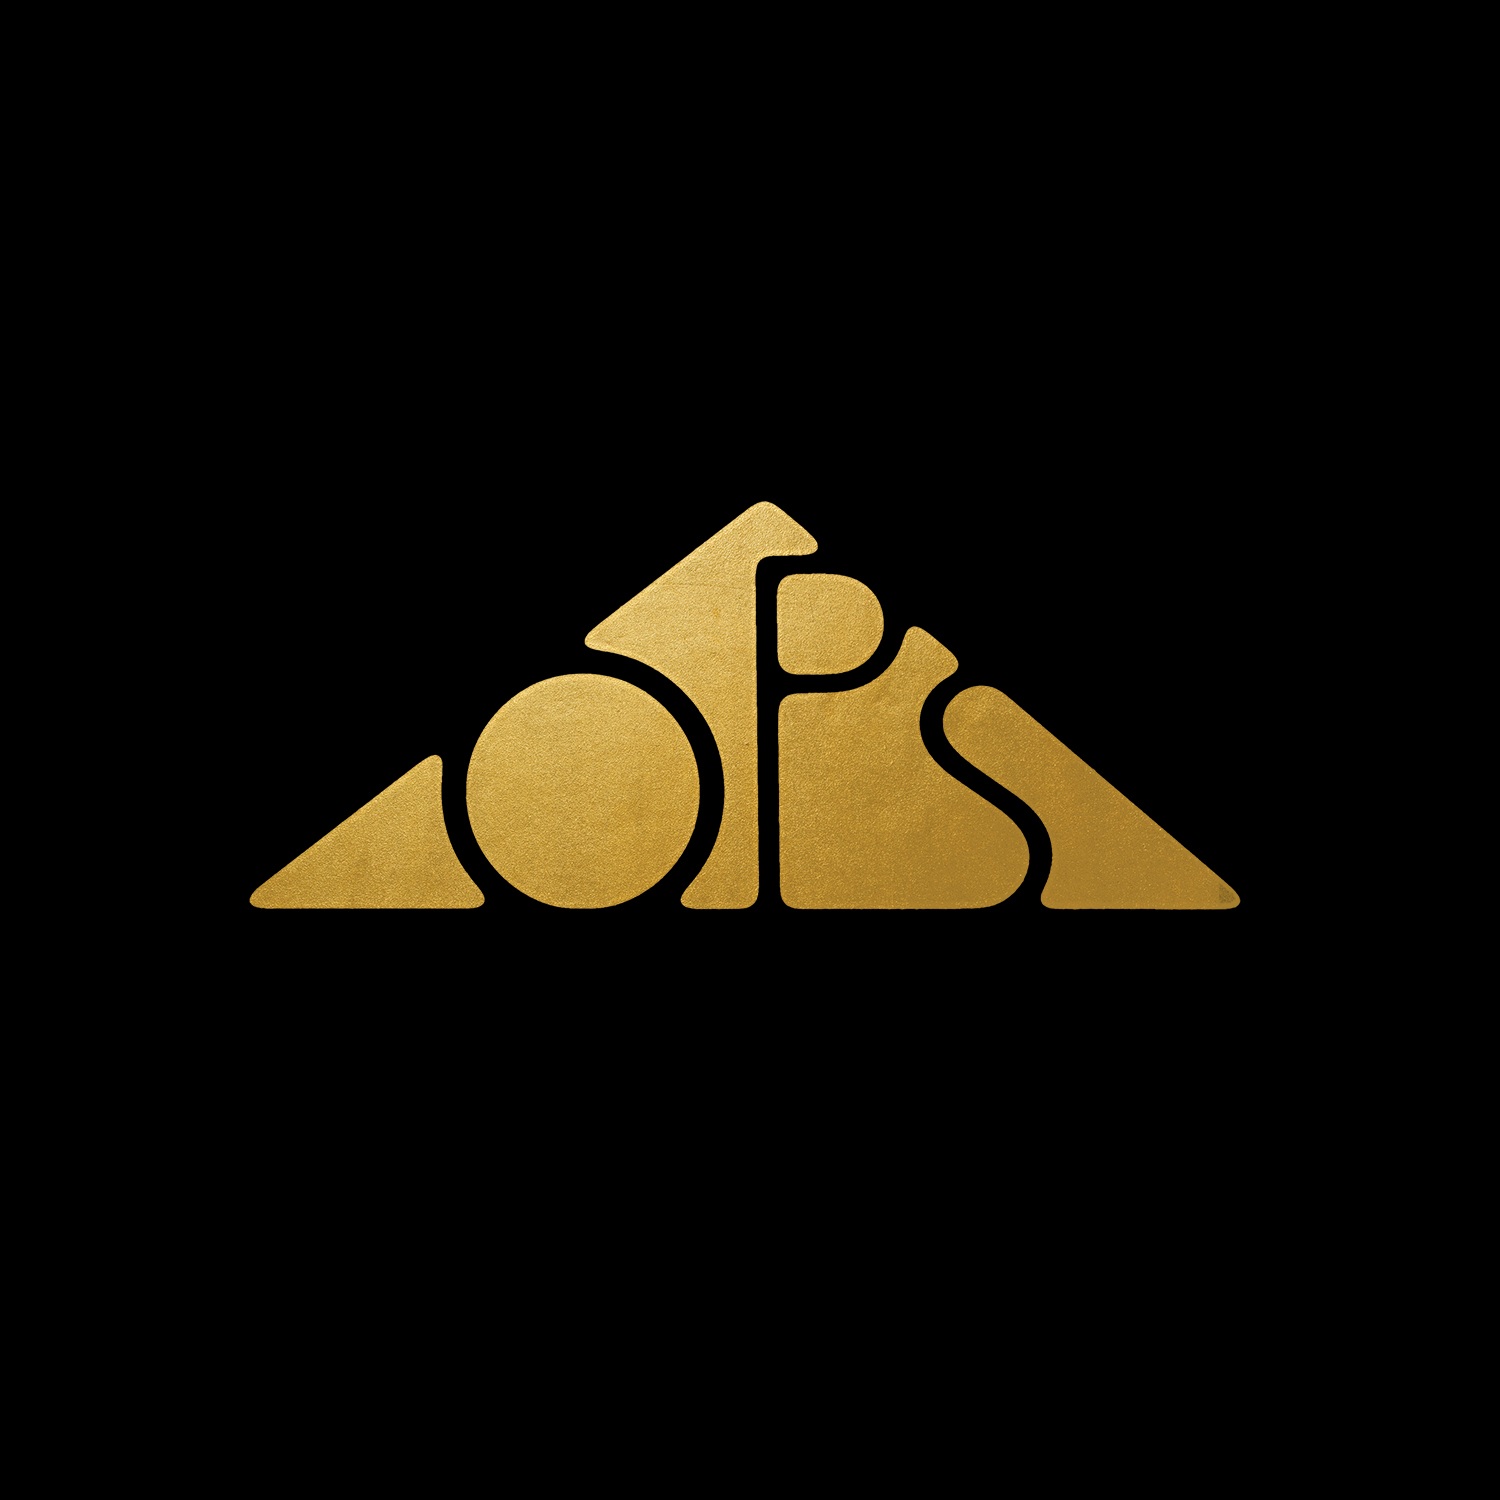 Ops pizza   logo